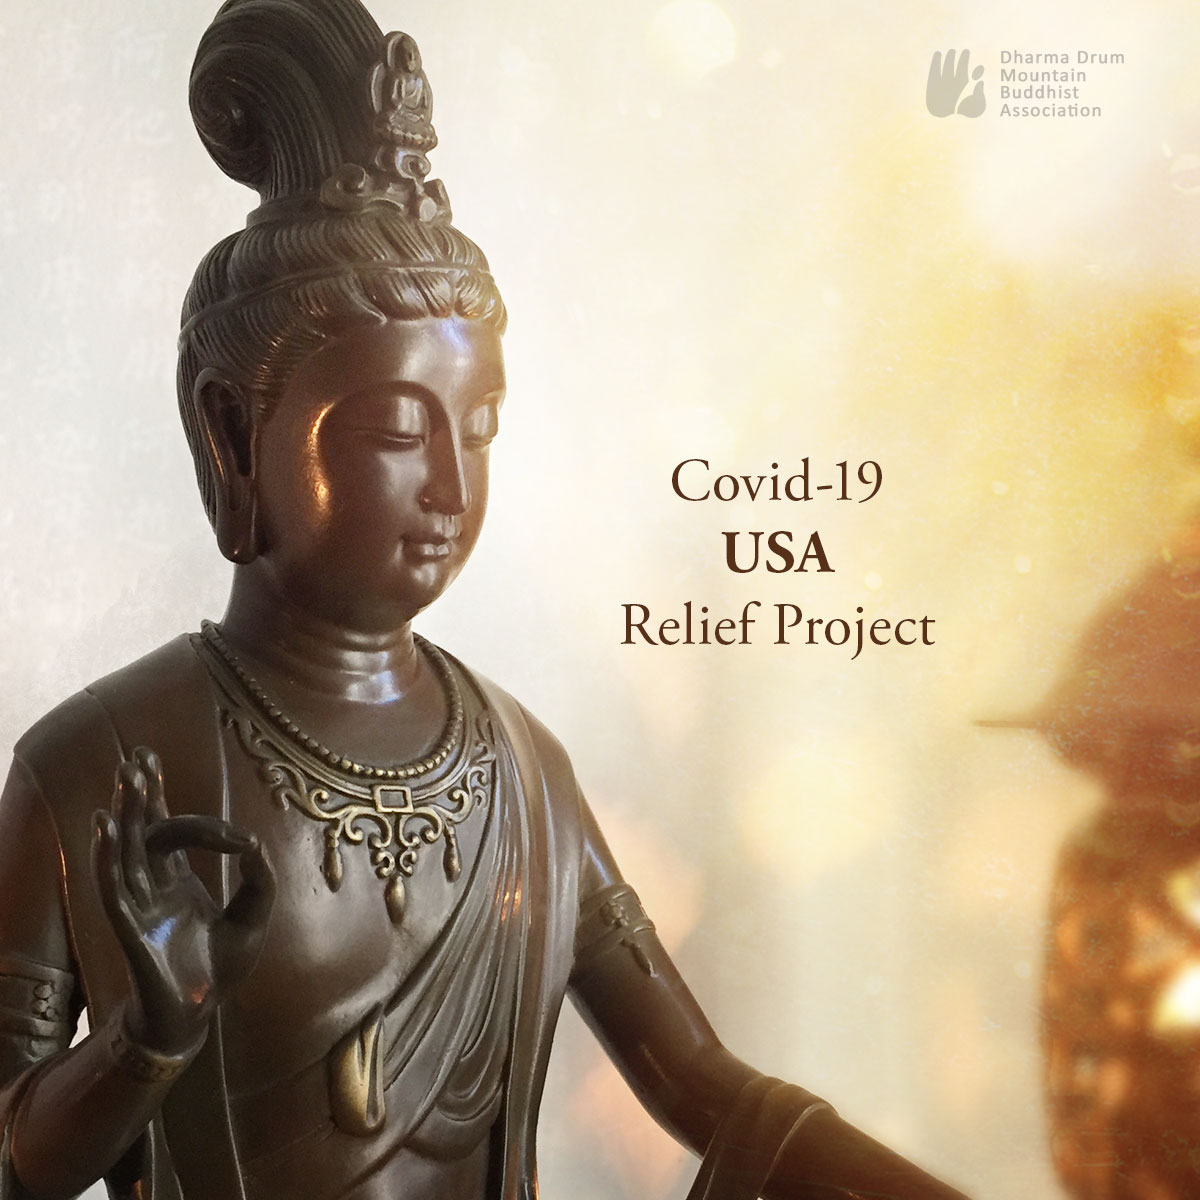 DDMBA COVID-19 USA Relief Project